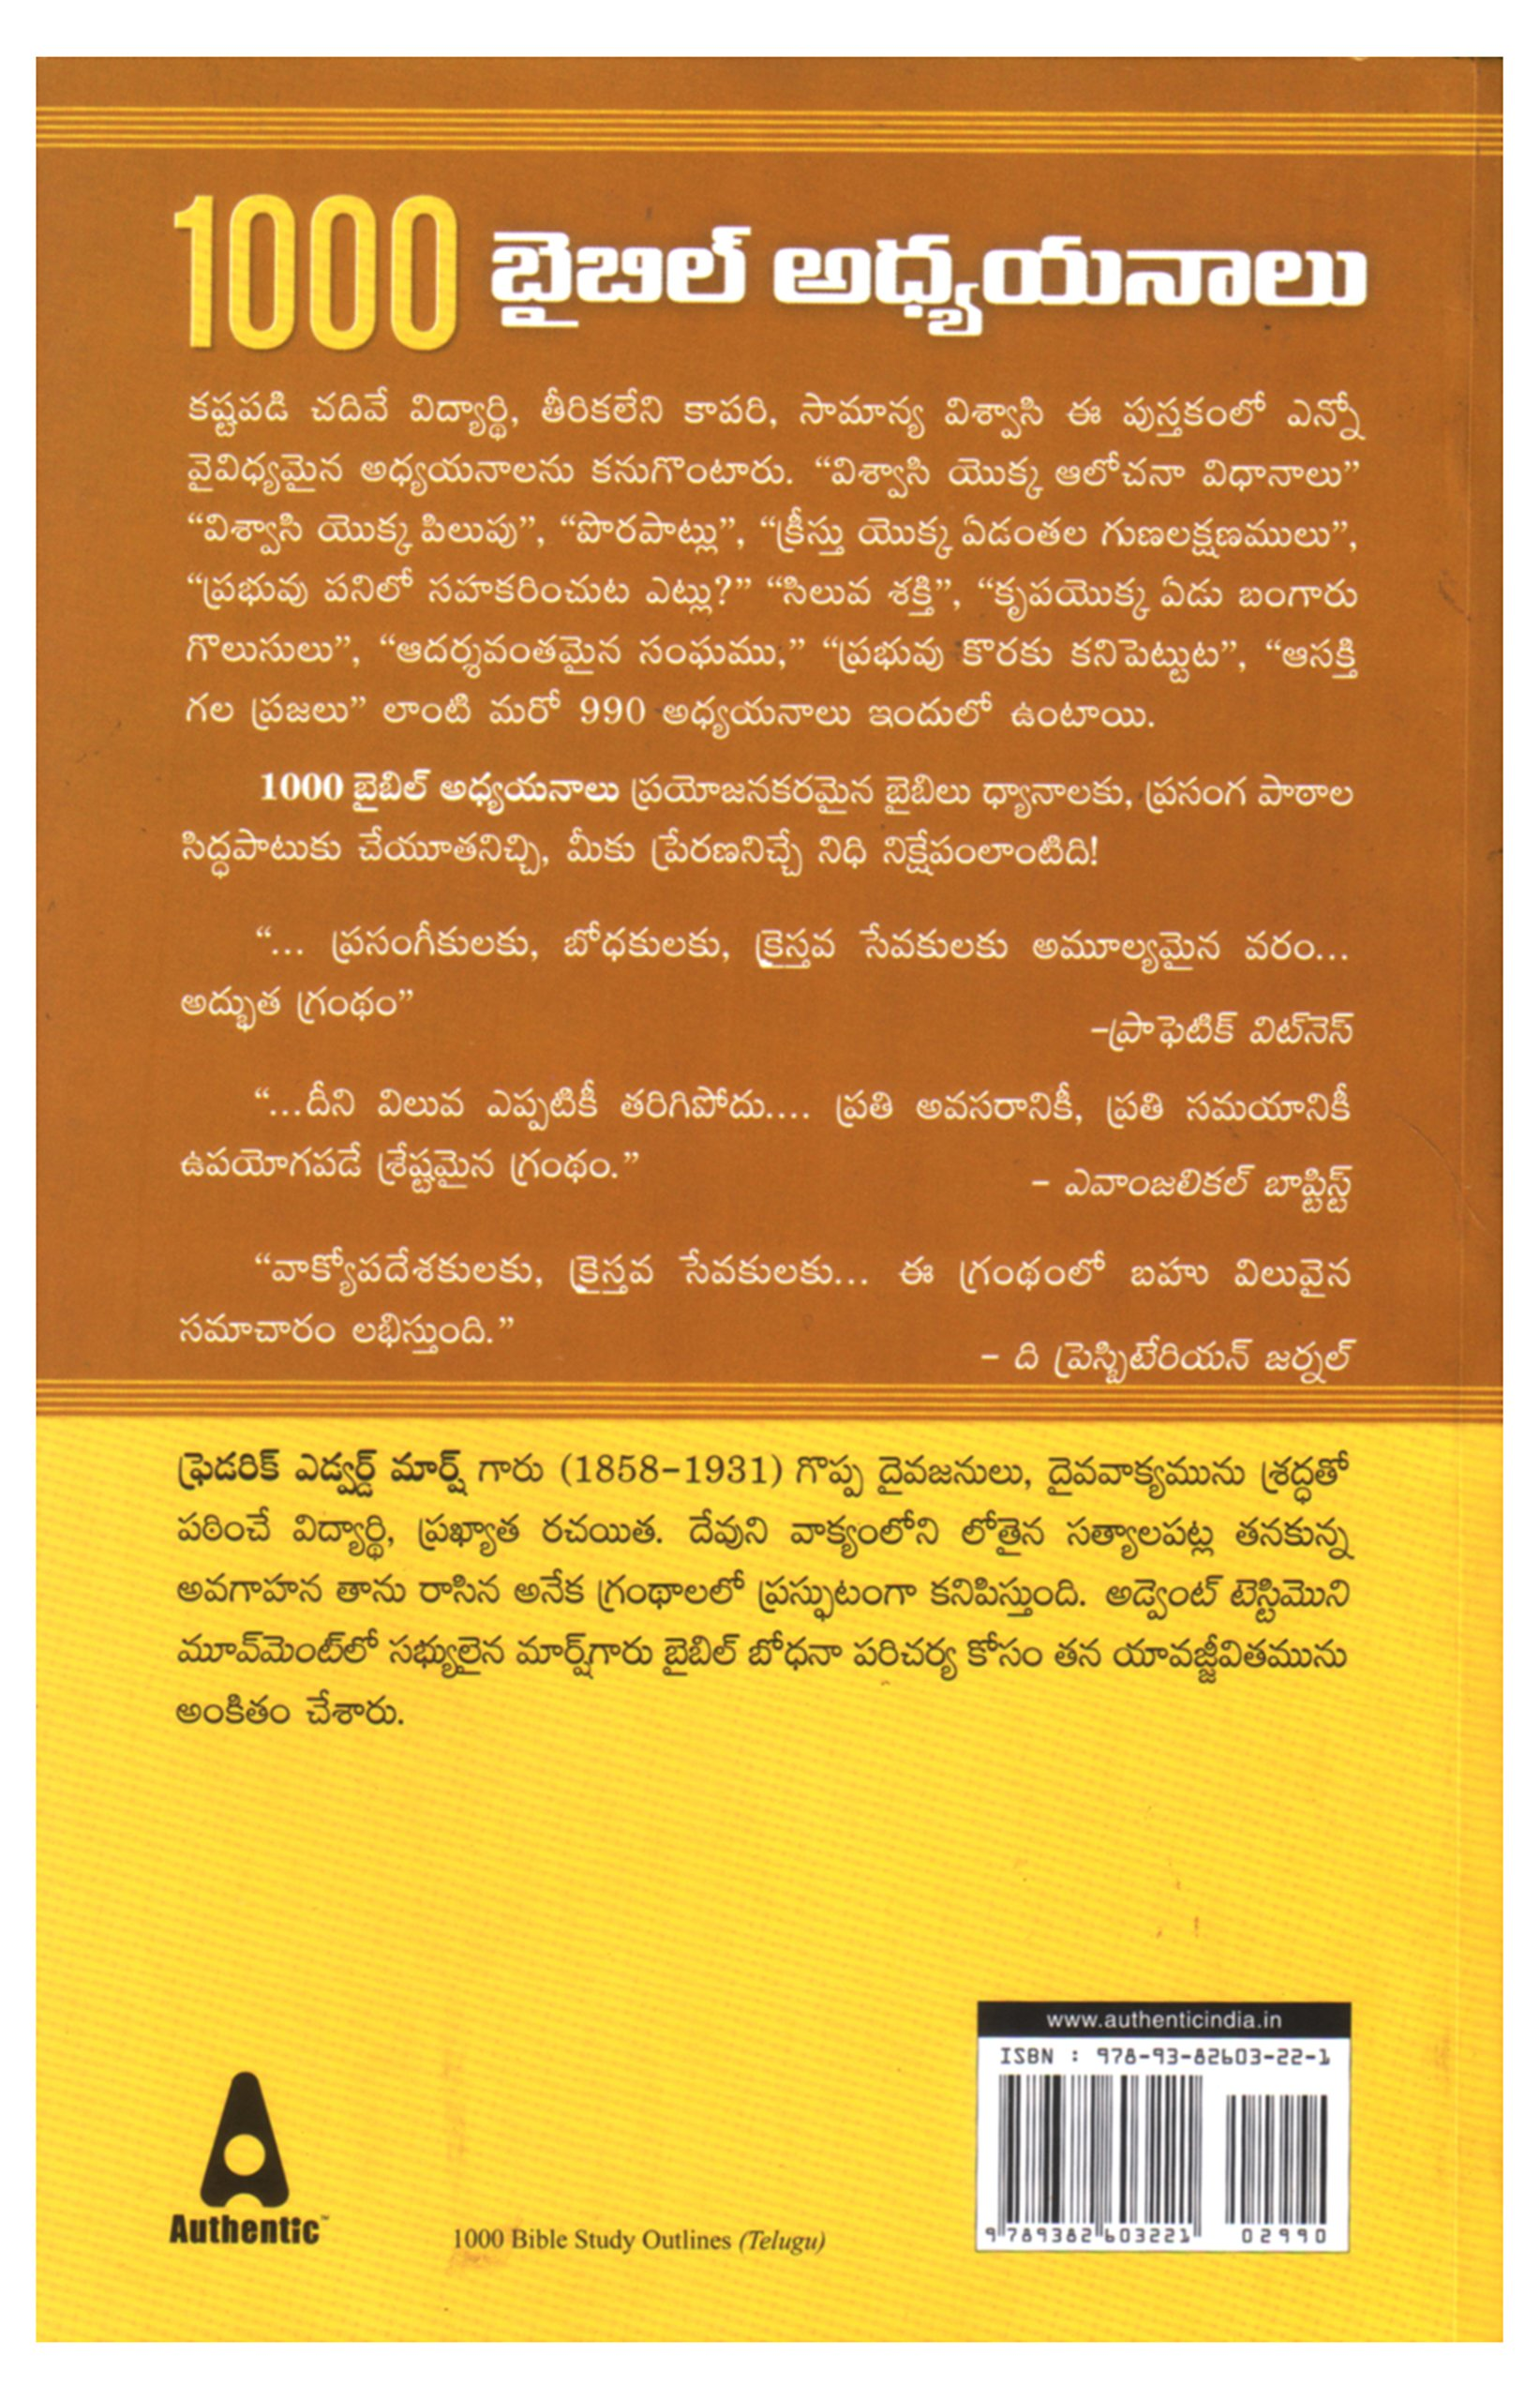 Buy 1000 Bible Study Outlines (Telugu ) Book Online at Low